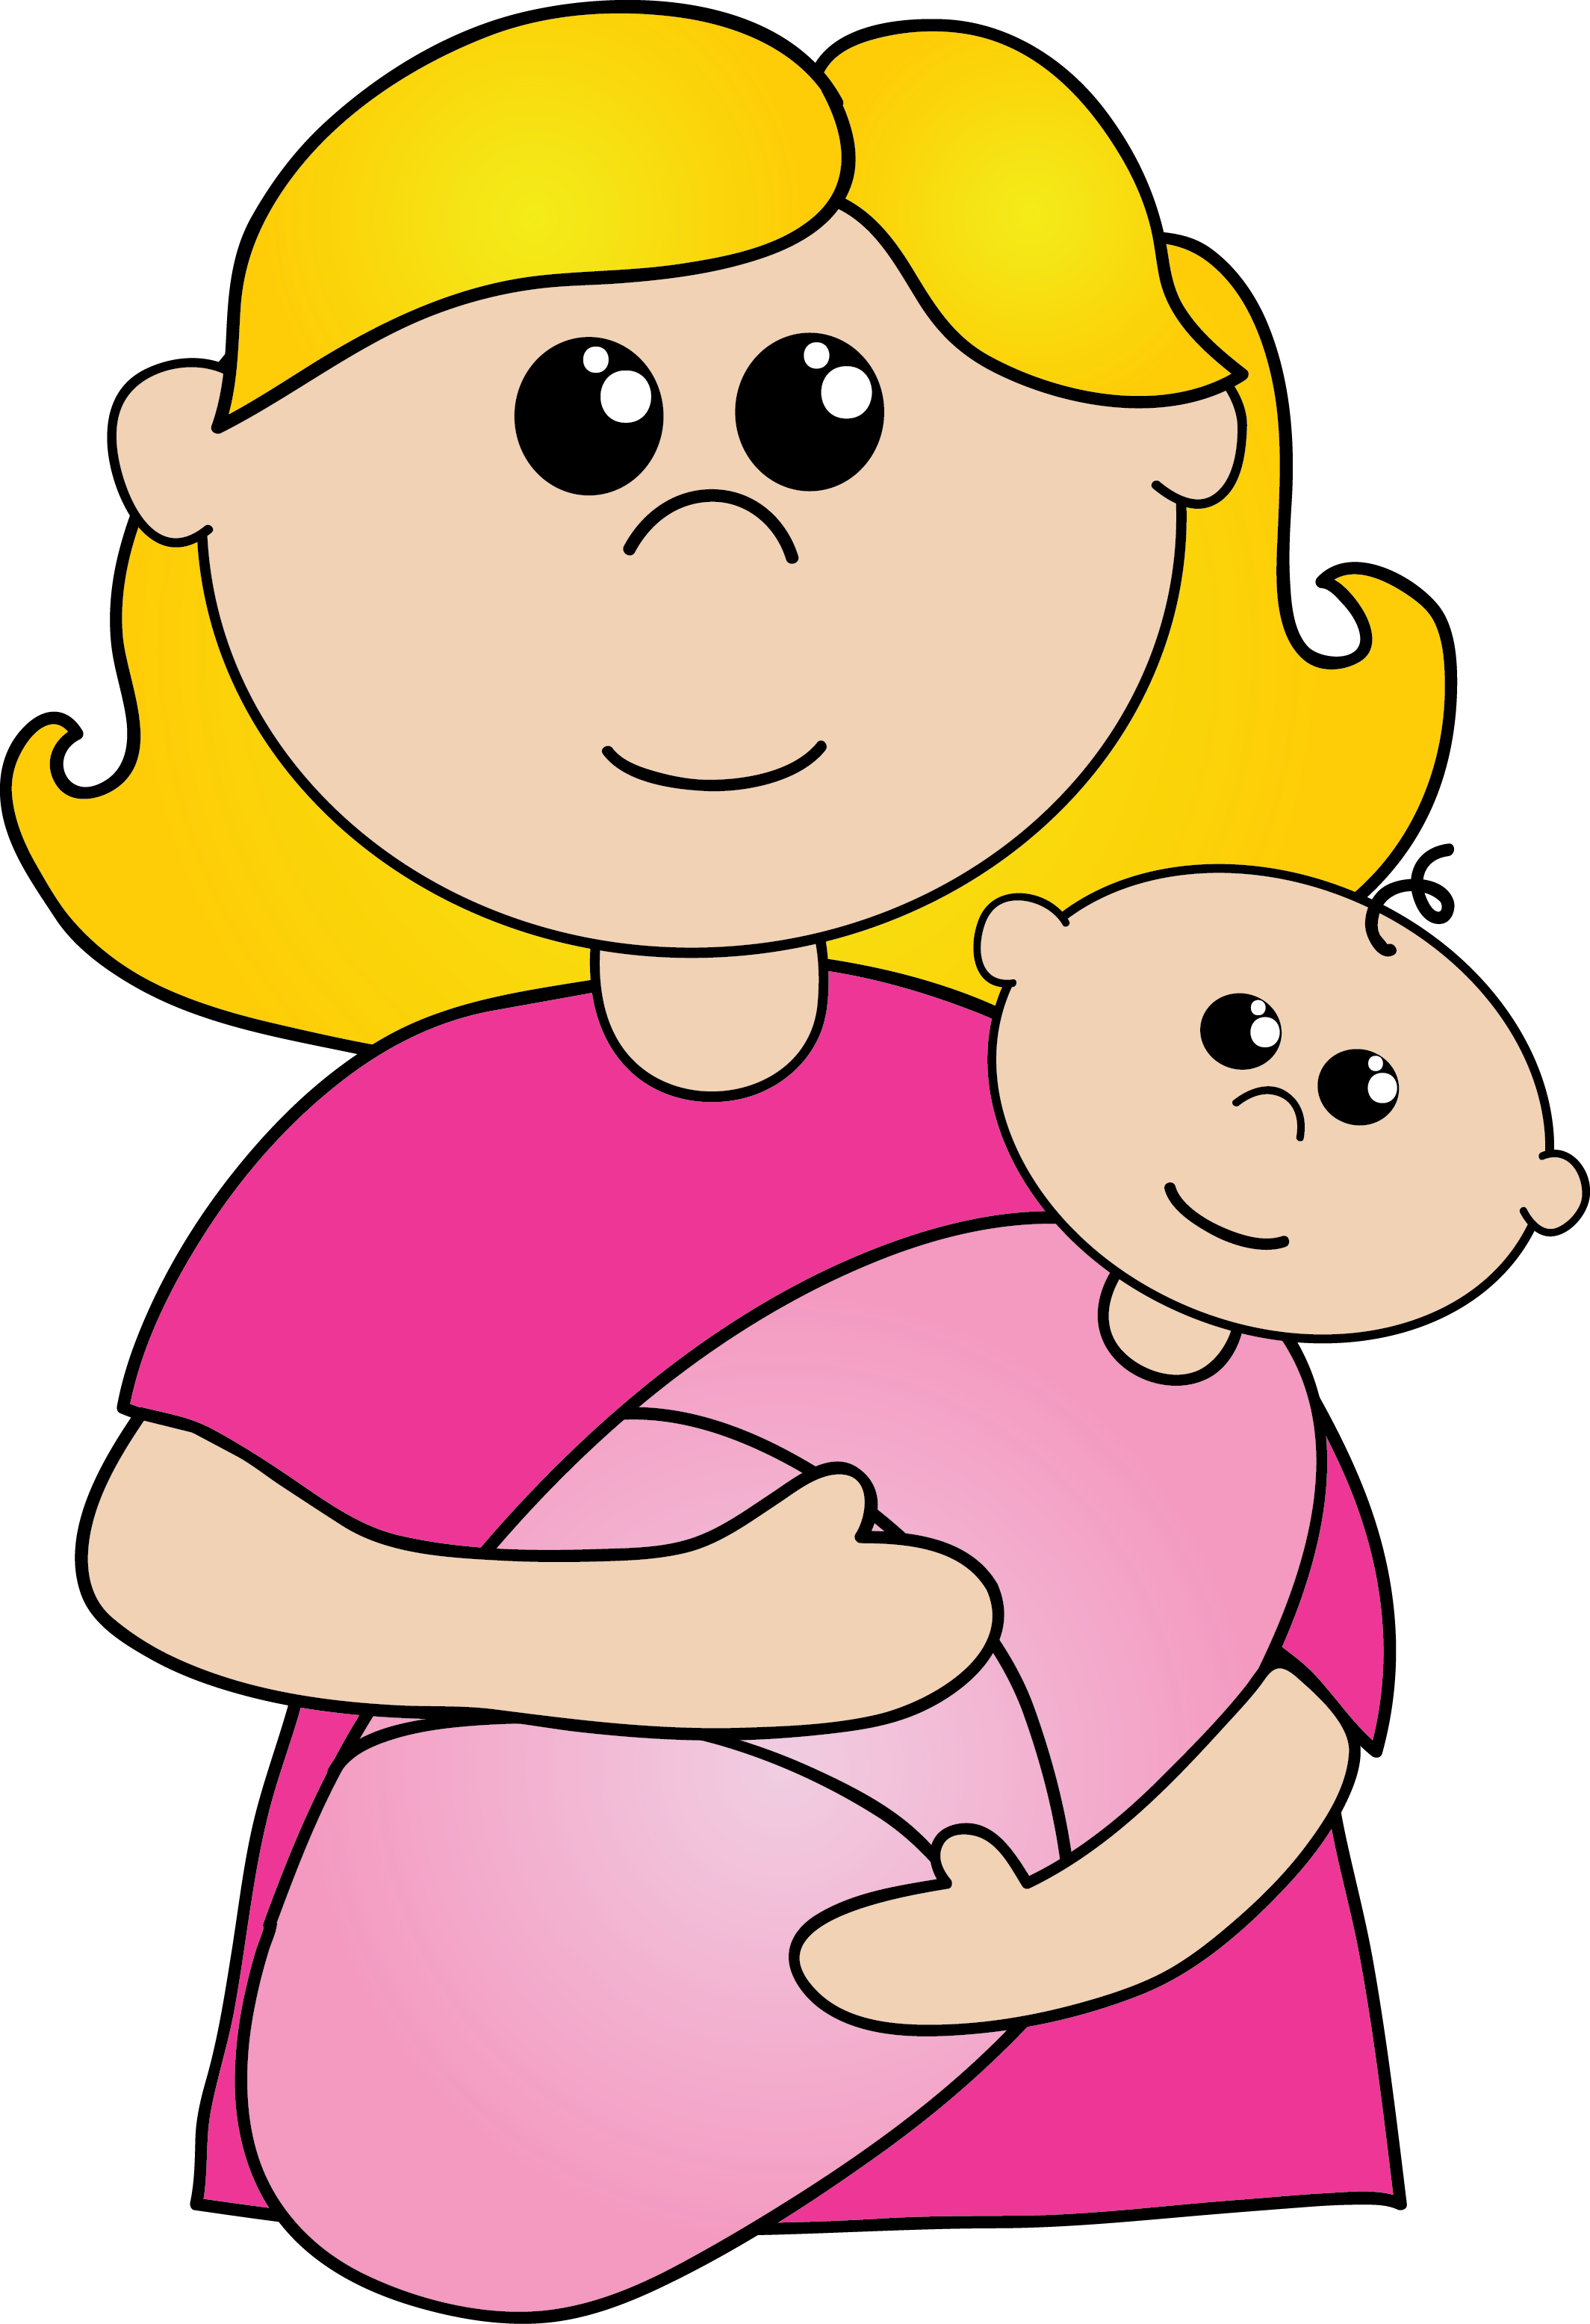 mother clipart-mother clipart-10